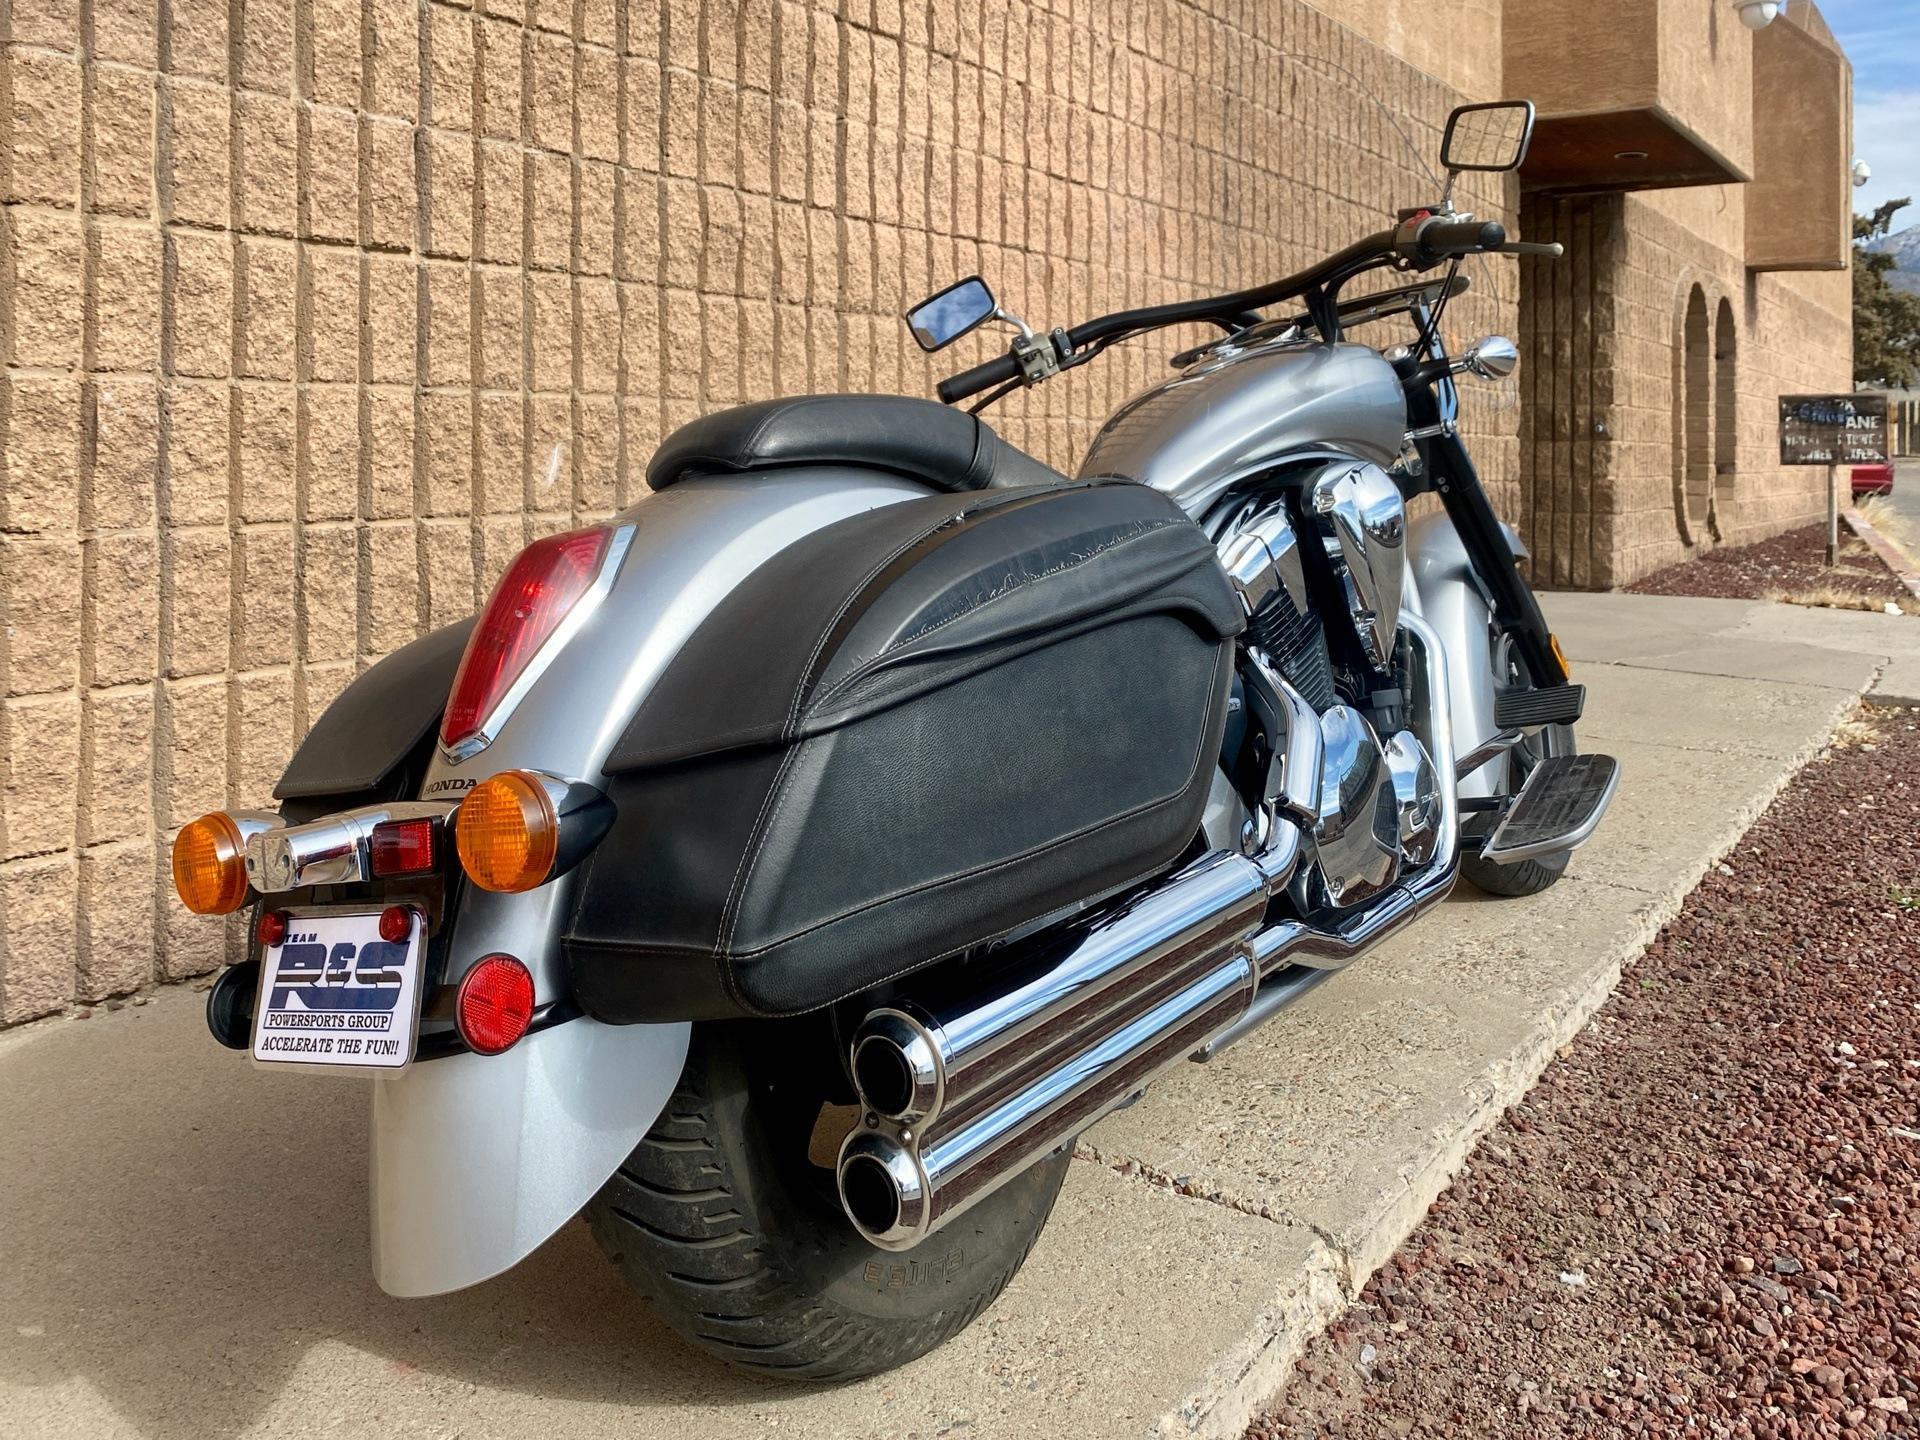 2014 Honda Interstate in Albuquerque, New Mexico - Photo 2